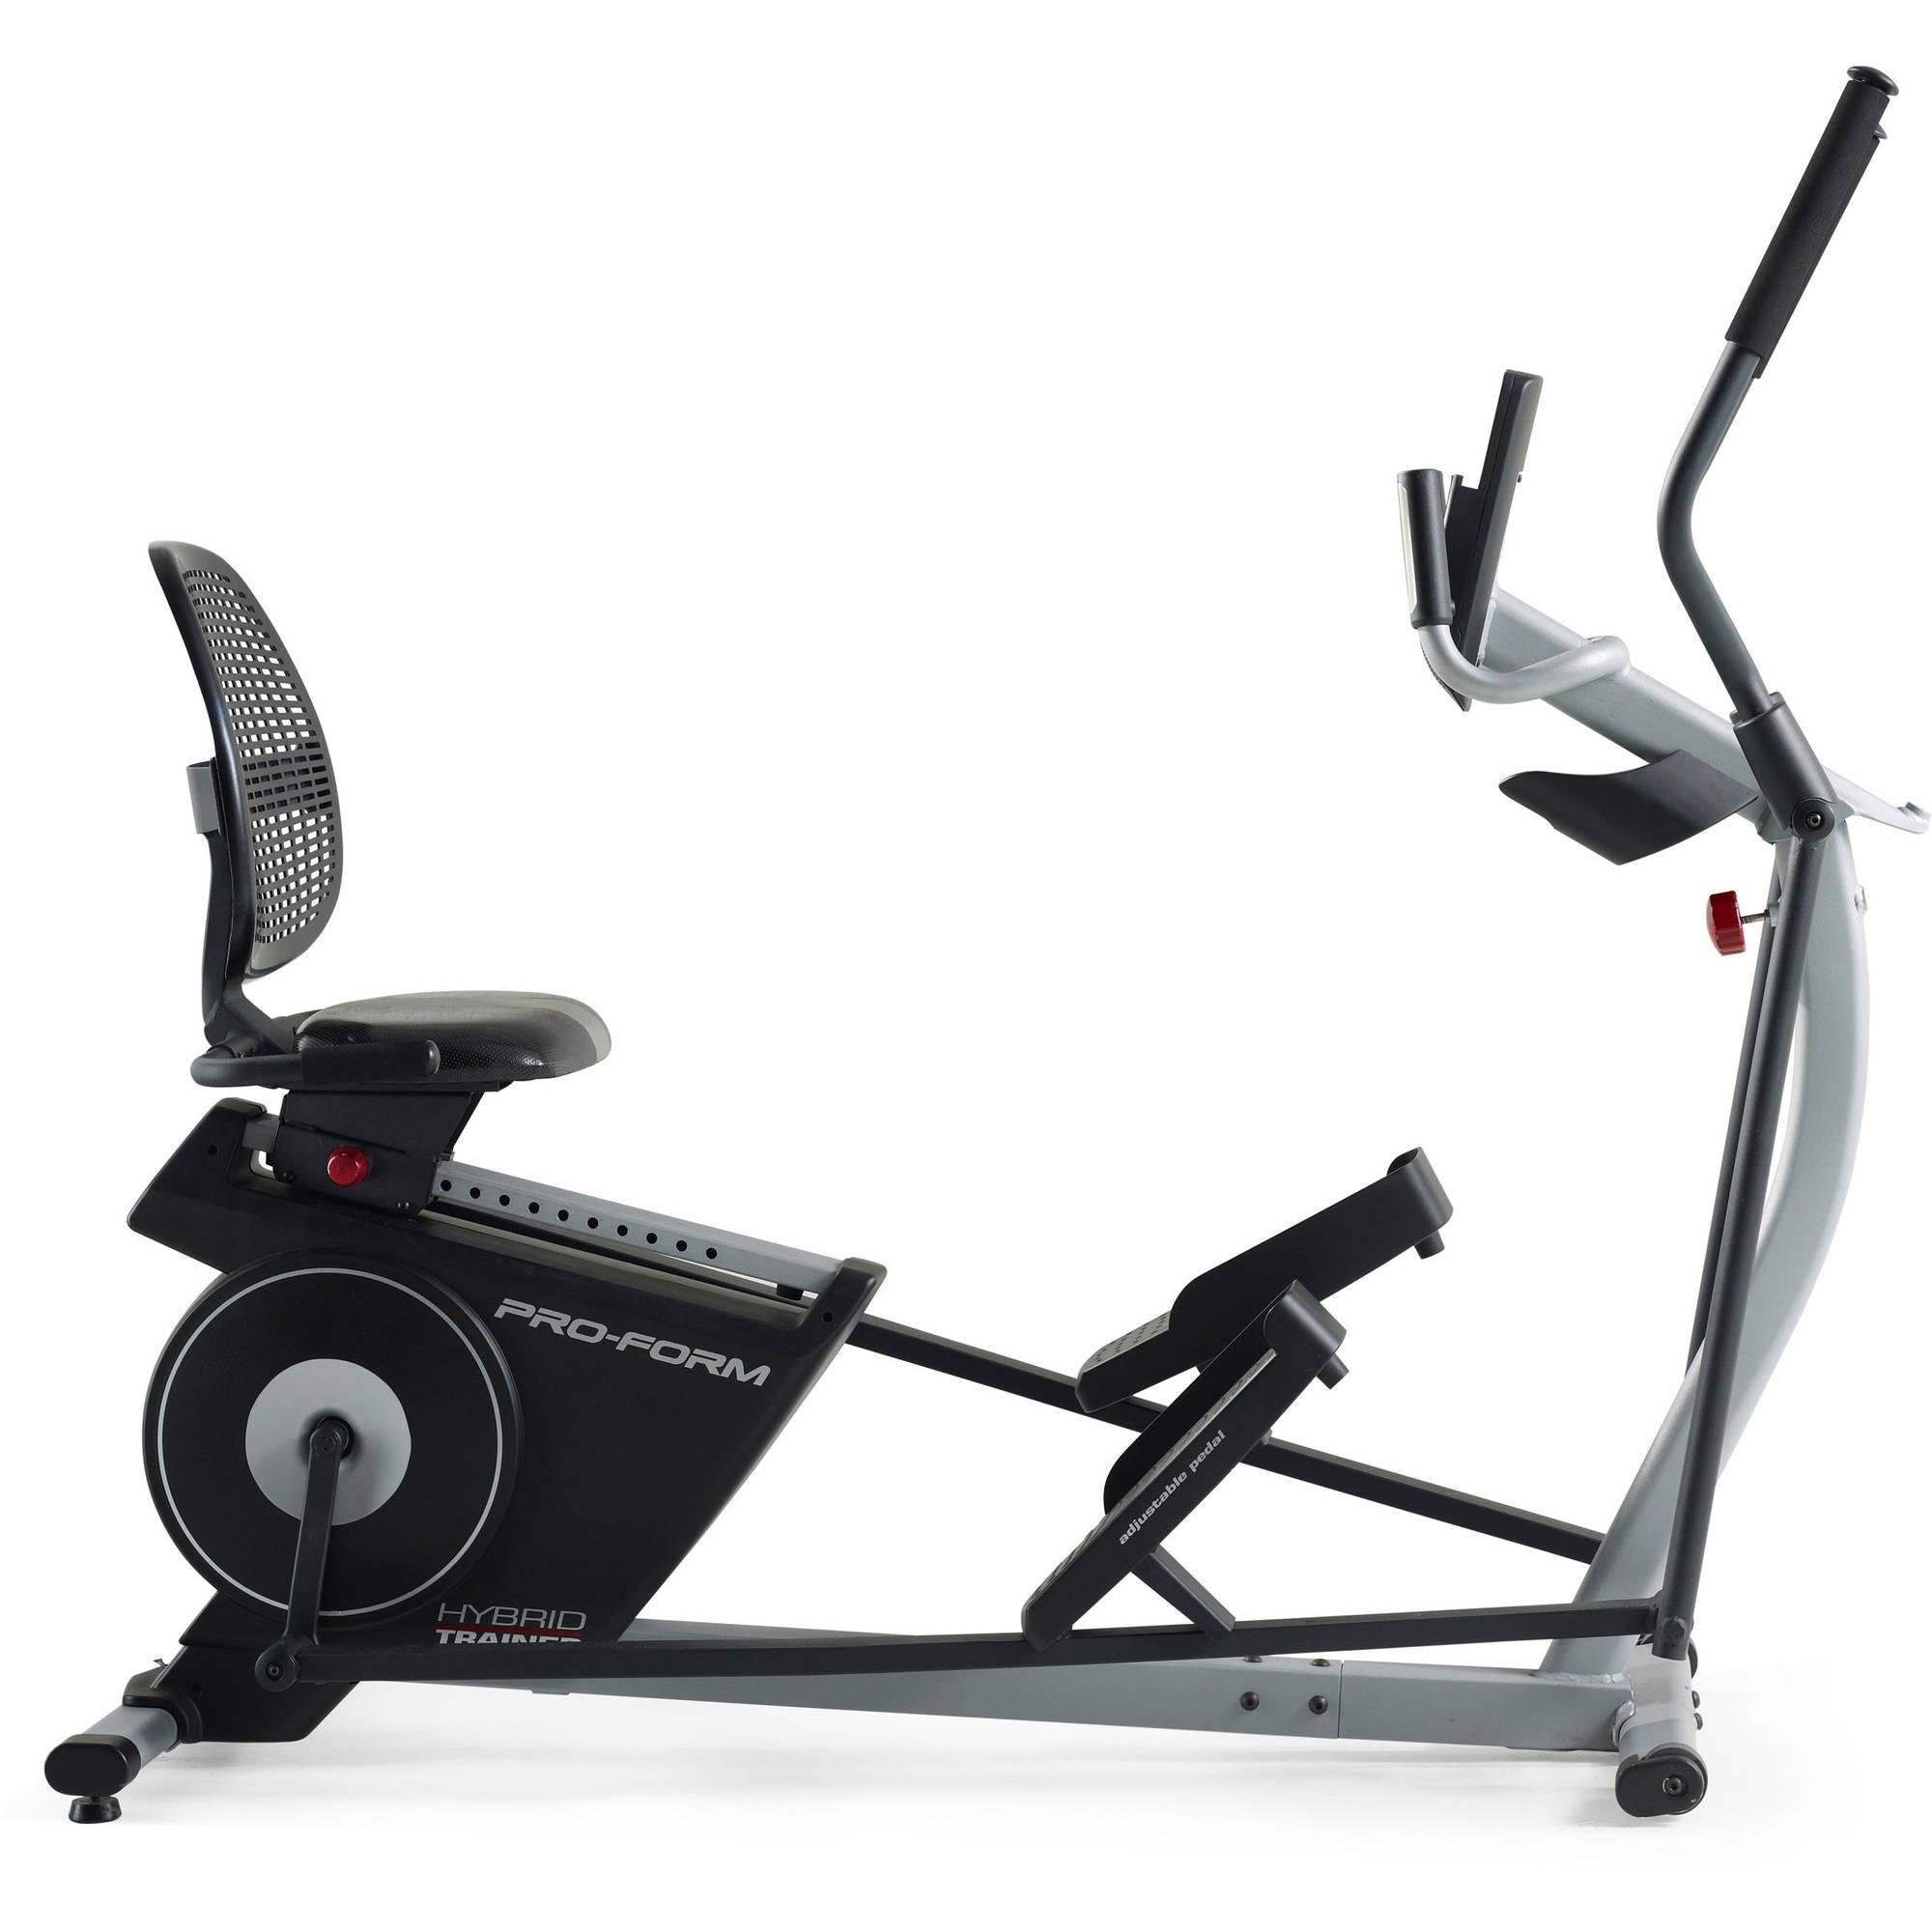 2-in-1 Double Elliptical and Recumbent Bike, Black by ProForm (Image #2)